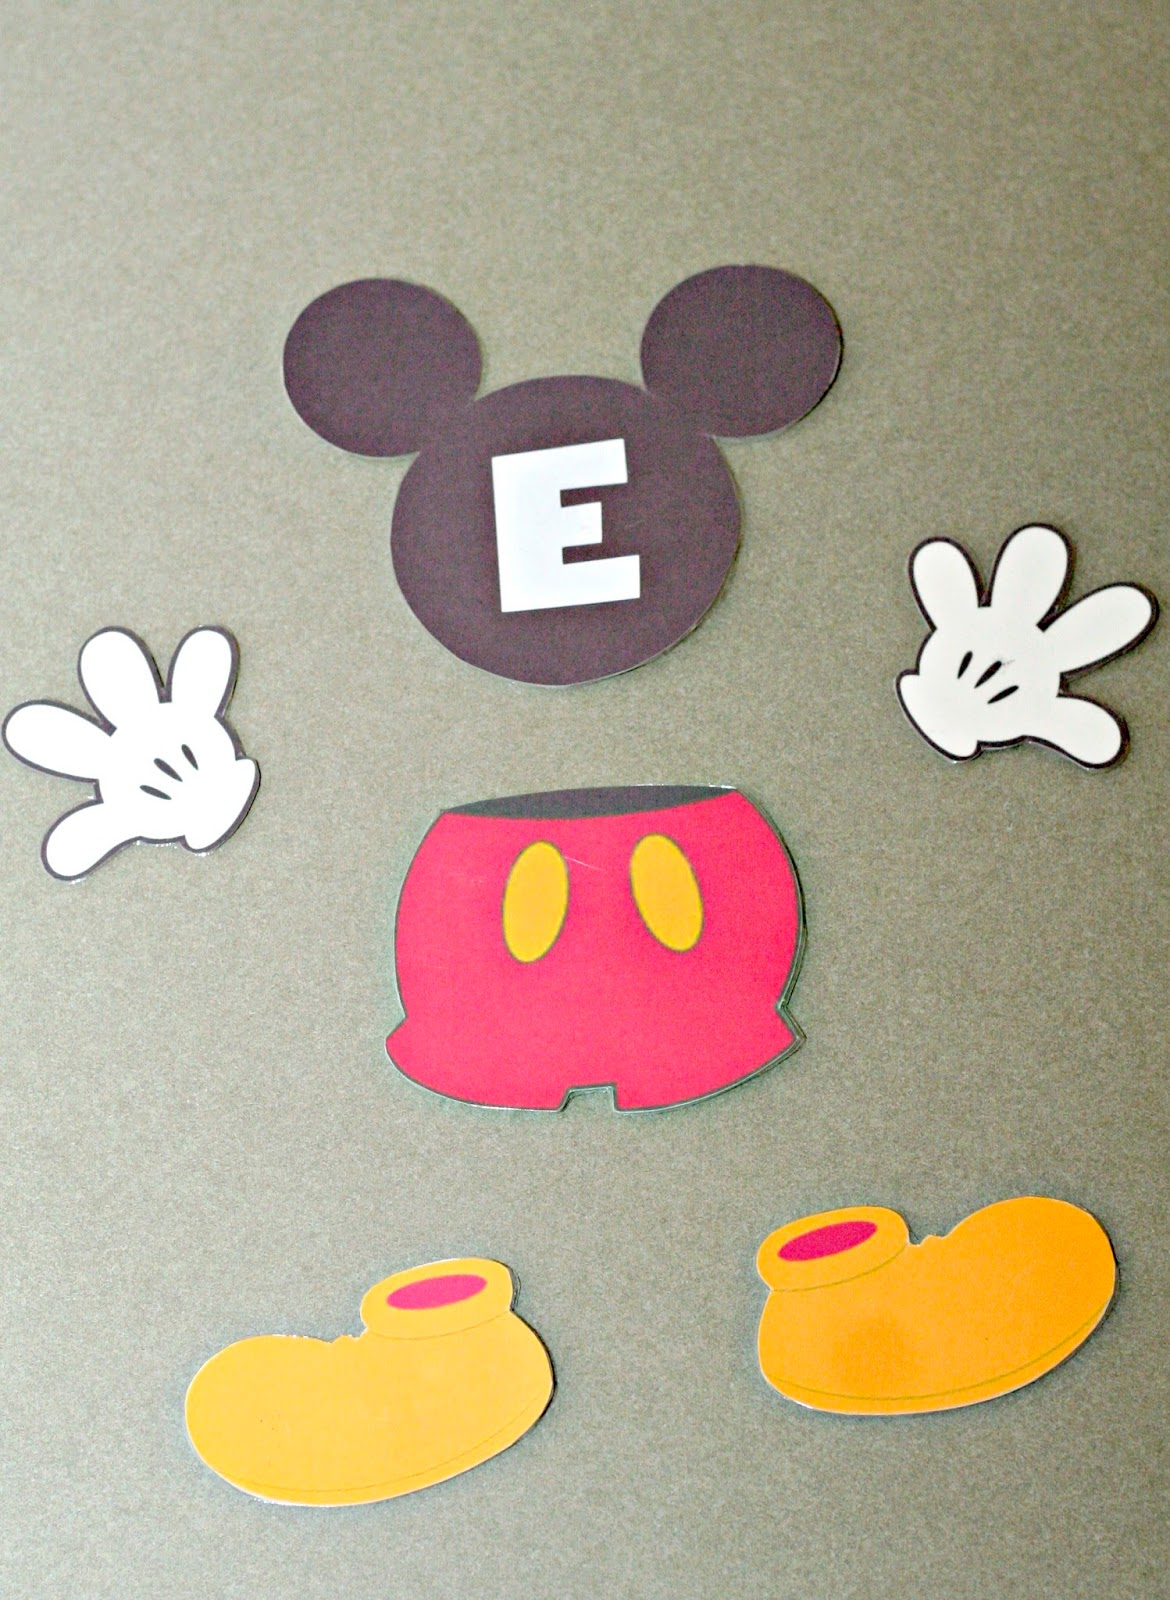 graphic relating to Printable Door Decs Templates identify Do-it-yourself Disney Cruise Doorway Magnets Printable - We Bought The Funk